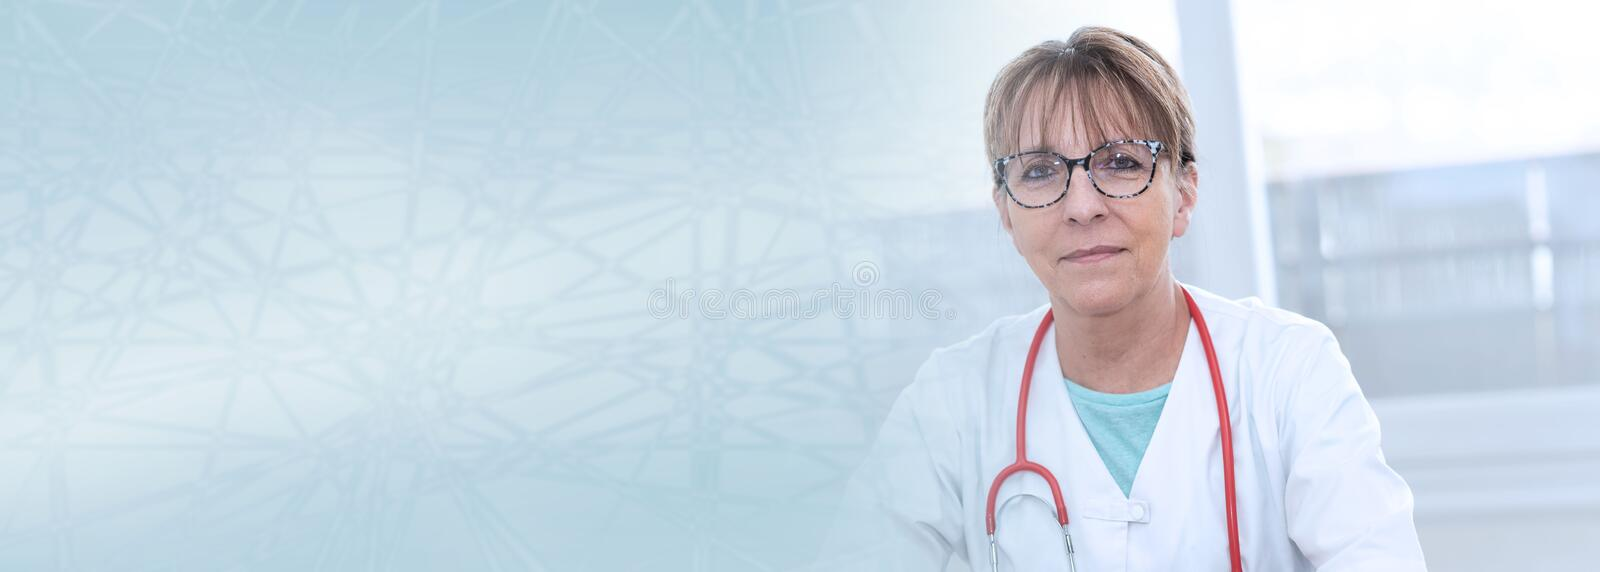 Portrait of female doctor; panoramic banner royalty free stock image